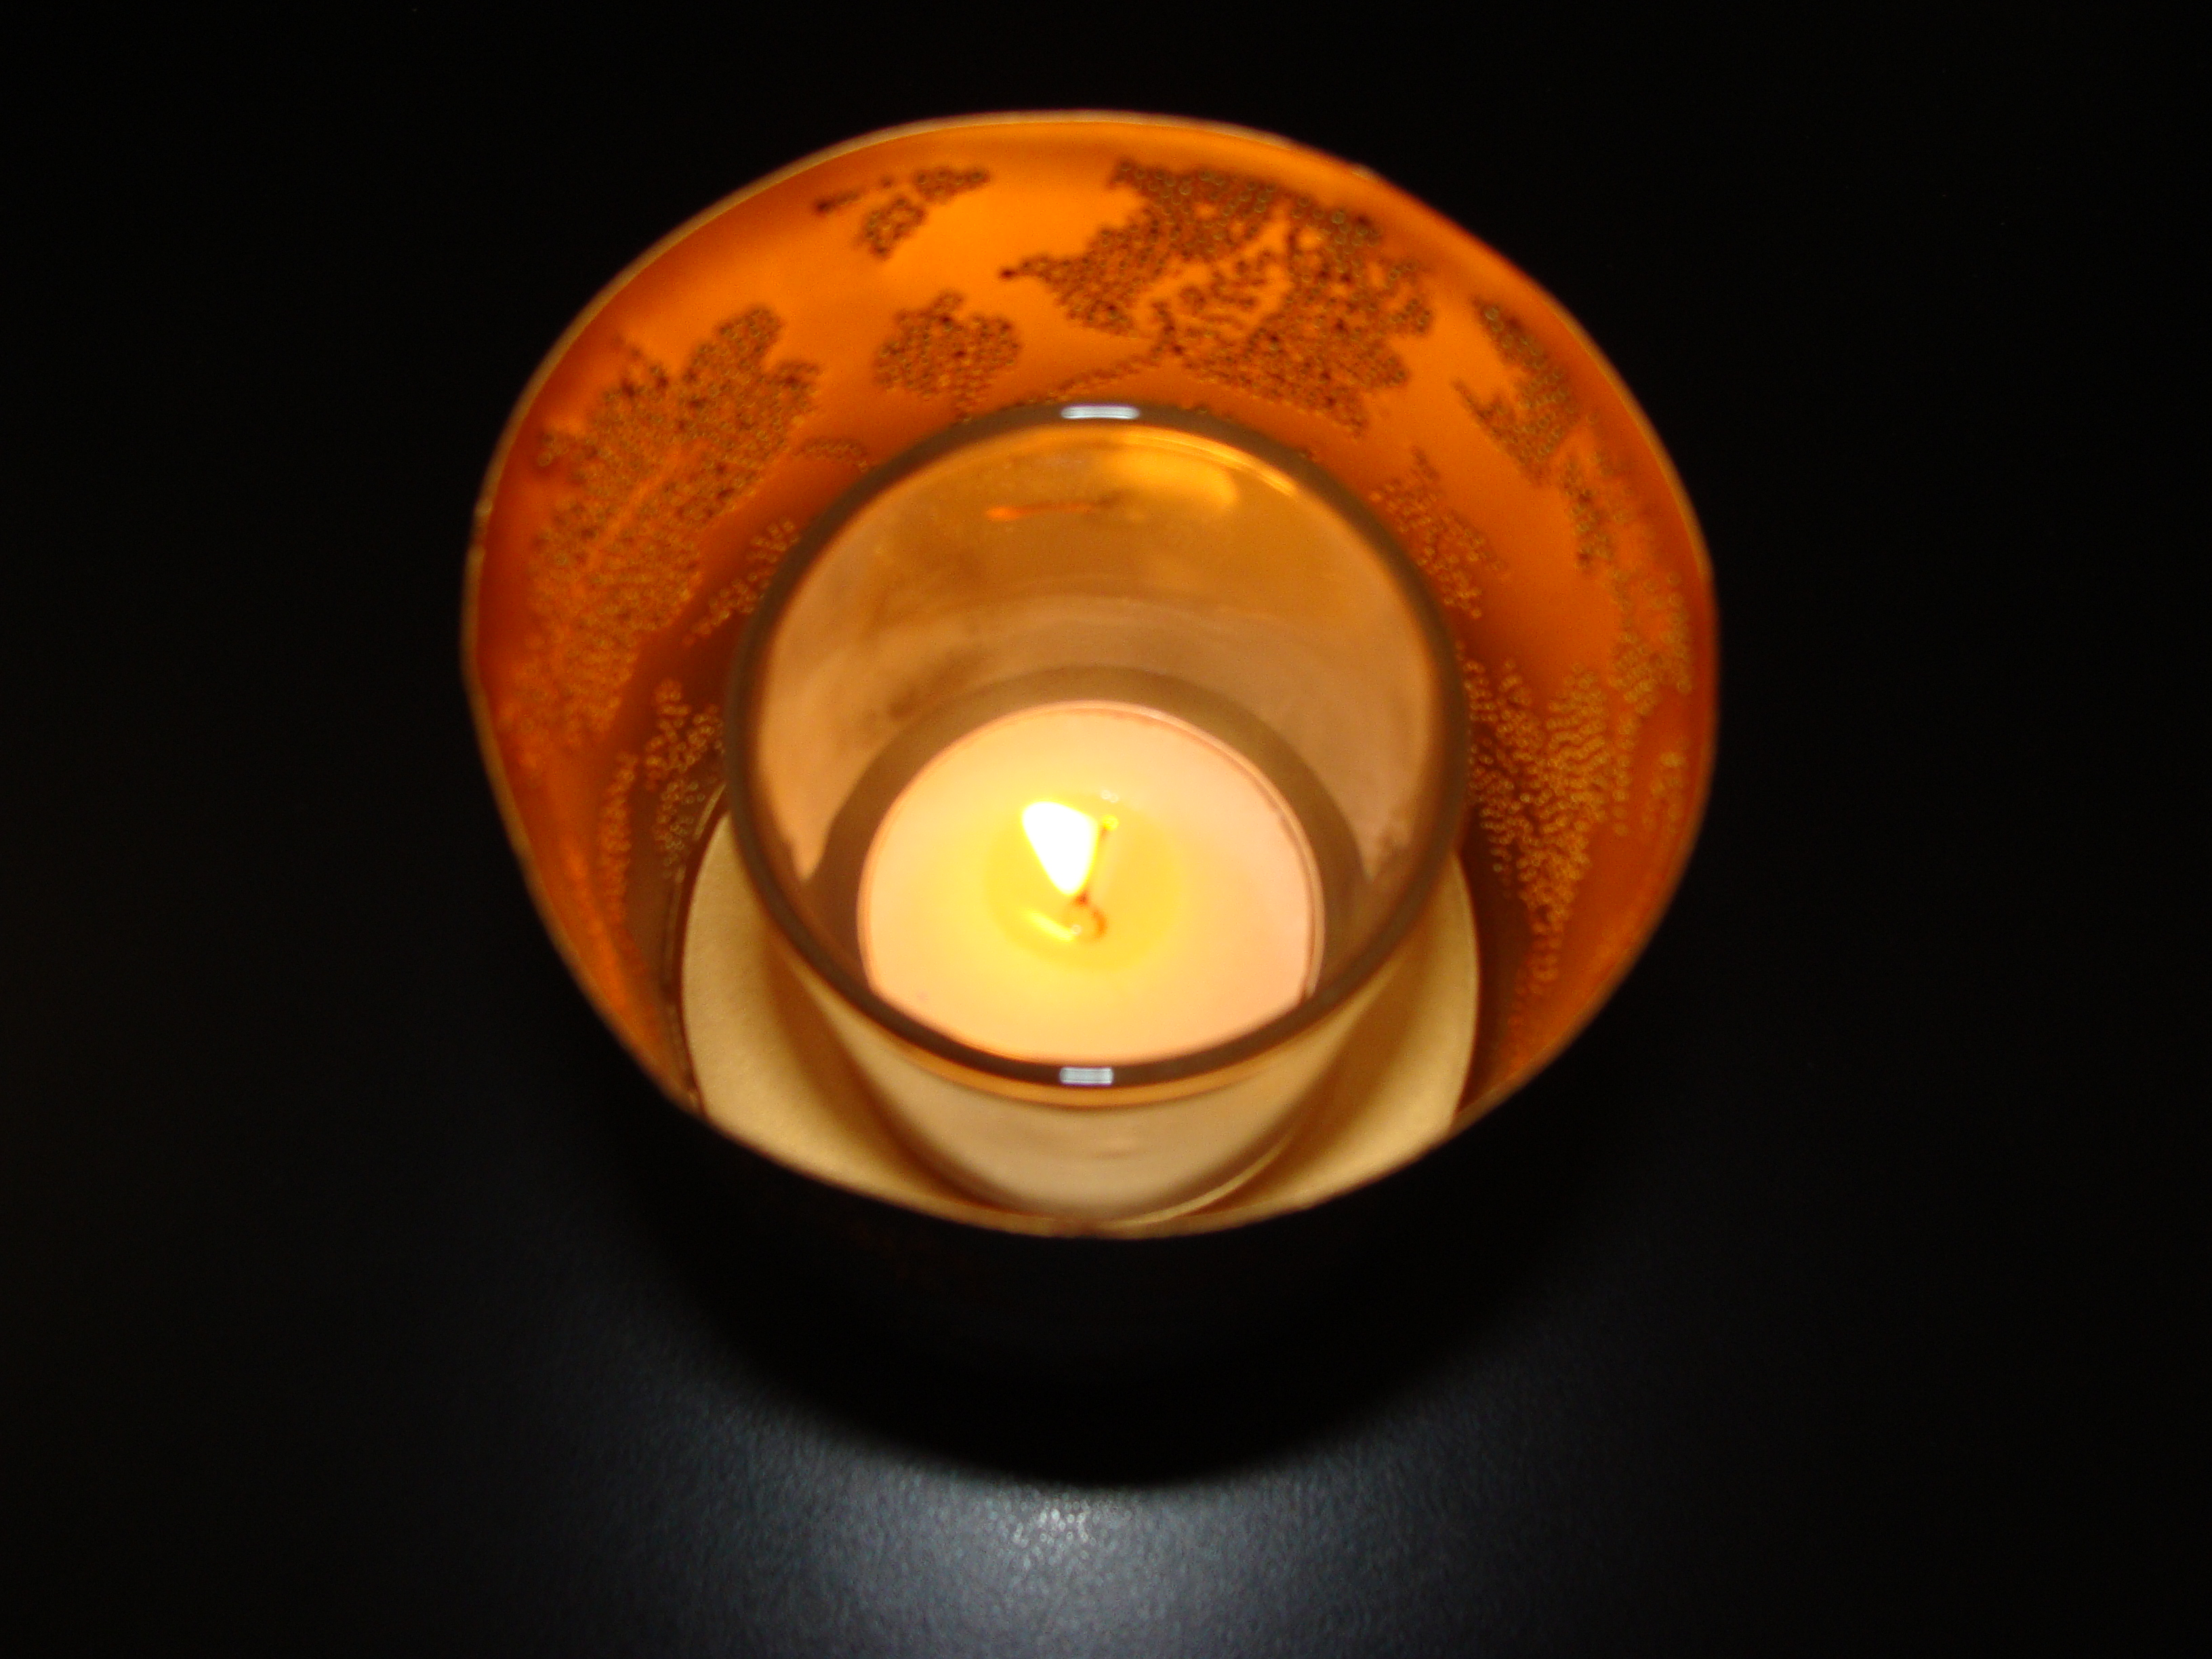 We ve all heard the saying it is better to light one candle than